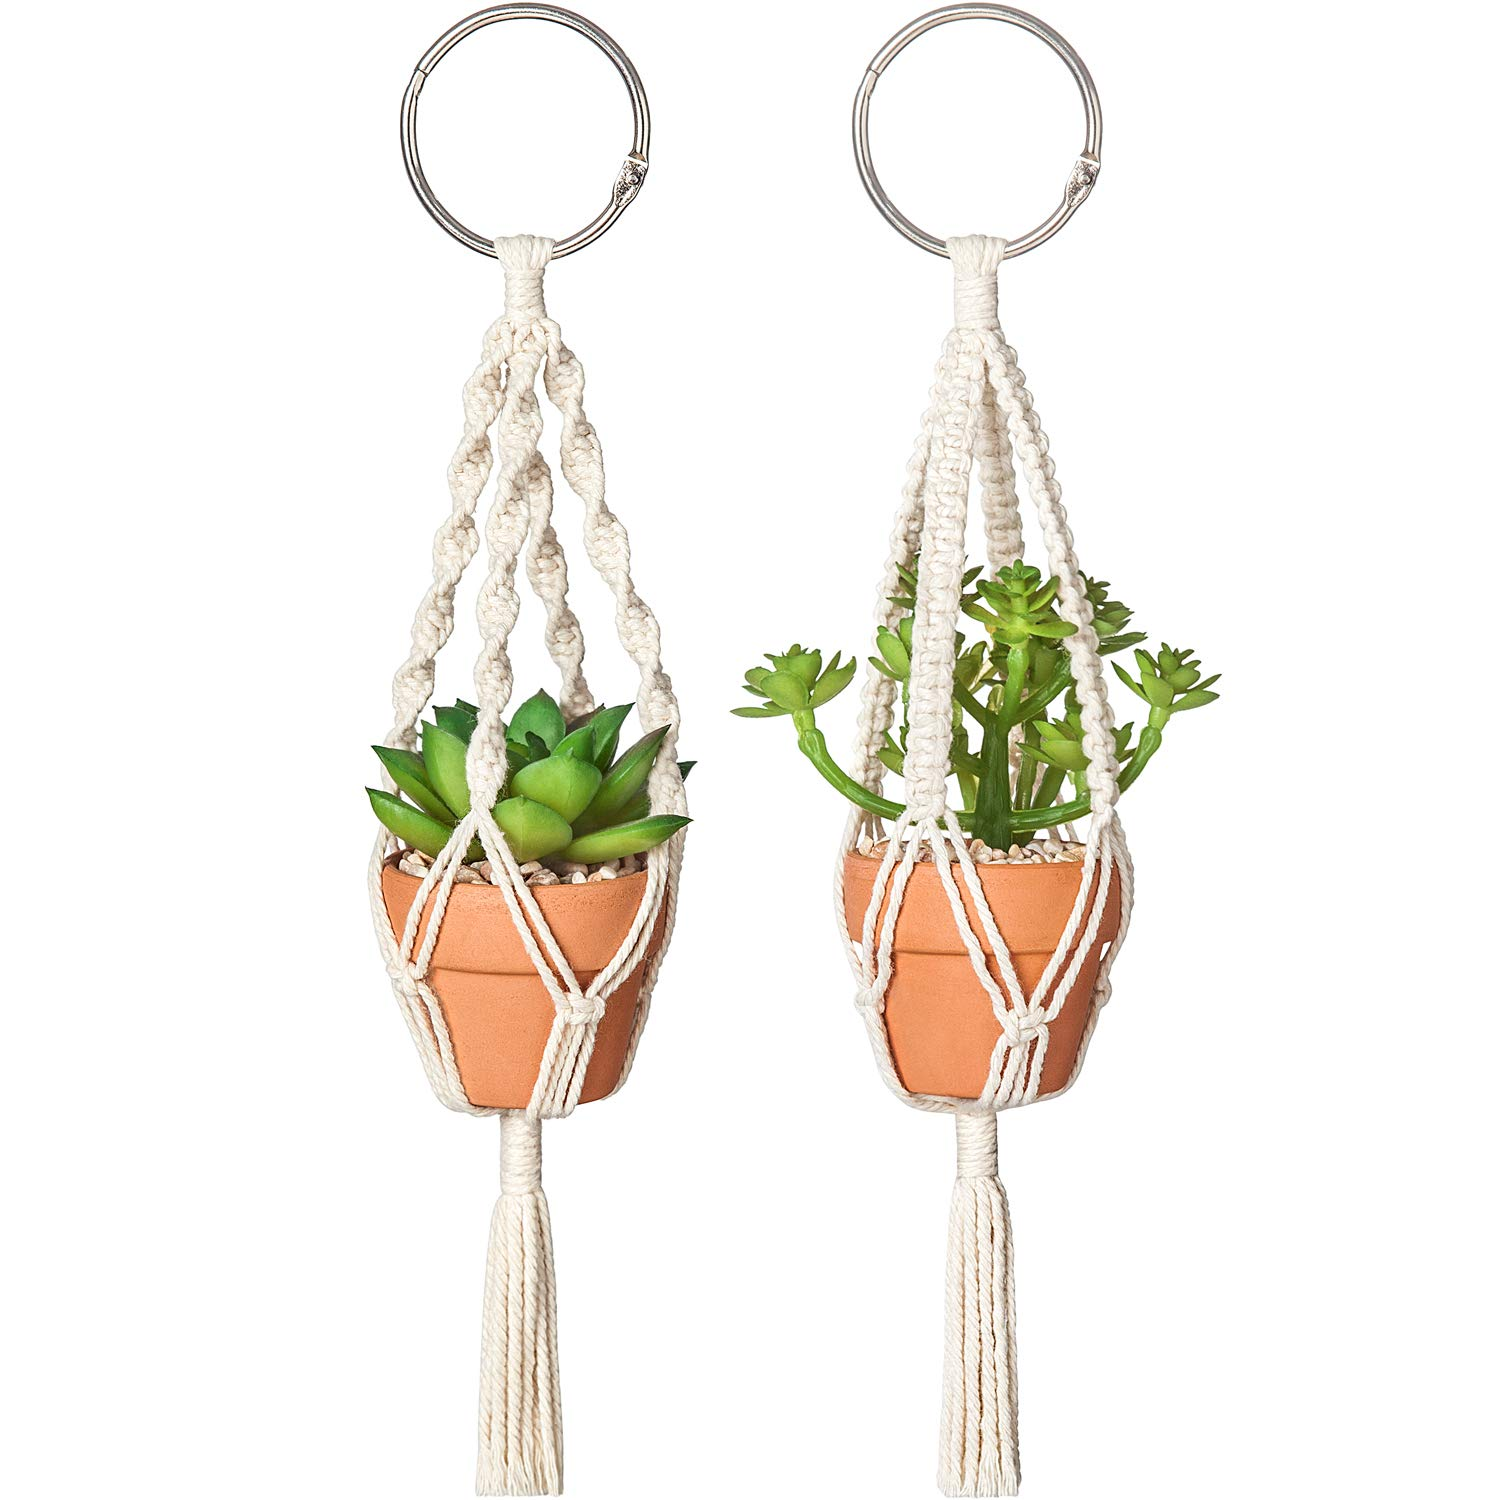 Dahey Mini Macrame Plant Car Hanging 2 Pcs Hanging Succulent For Car Decorations Handmade Rear View Mirrior Charm Boho Planter With Ceramic Pot And Plant For Car Home Decor 10 5 Inch Red